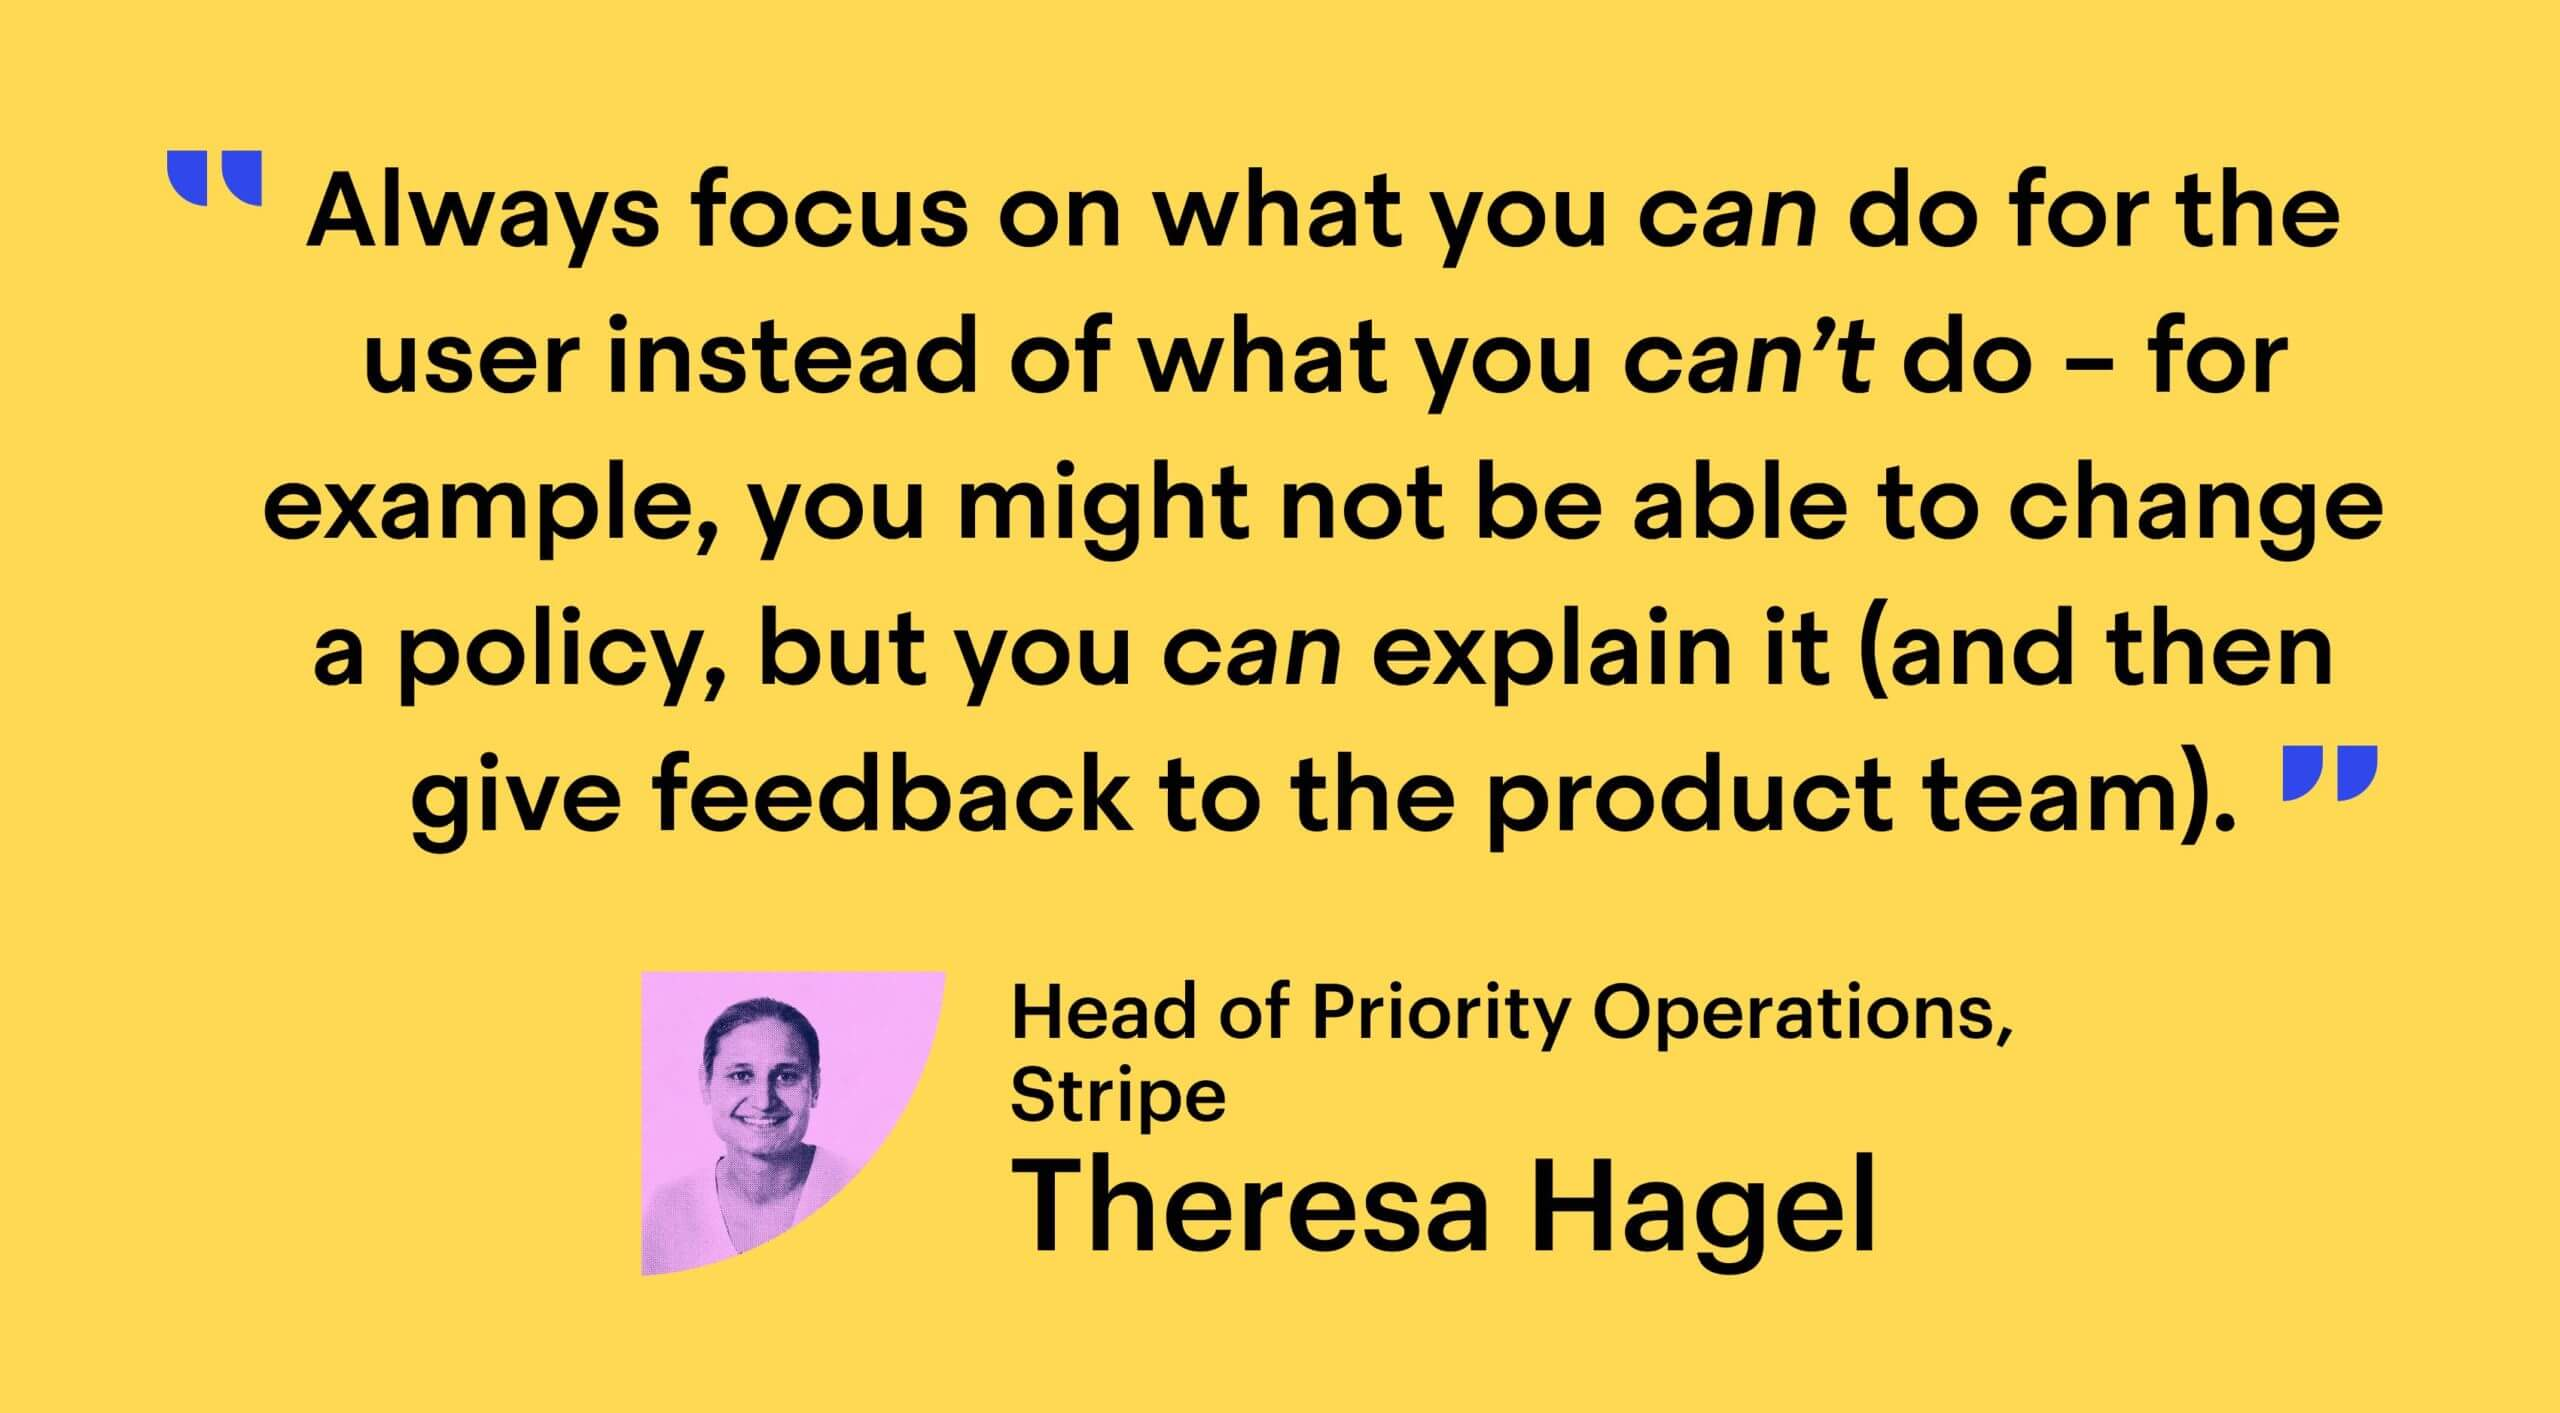 """""""Always focus on what you can do for the user instead of what you can't do – for example, you might not be able to change a policy, but you can explain it (and then give feedback to the product team)."""" - Theresa Hagel, Head of Priority Operations at Stripe"""